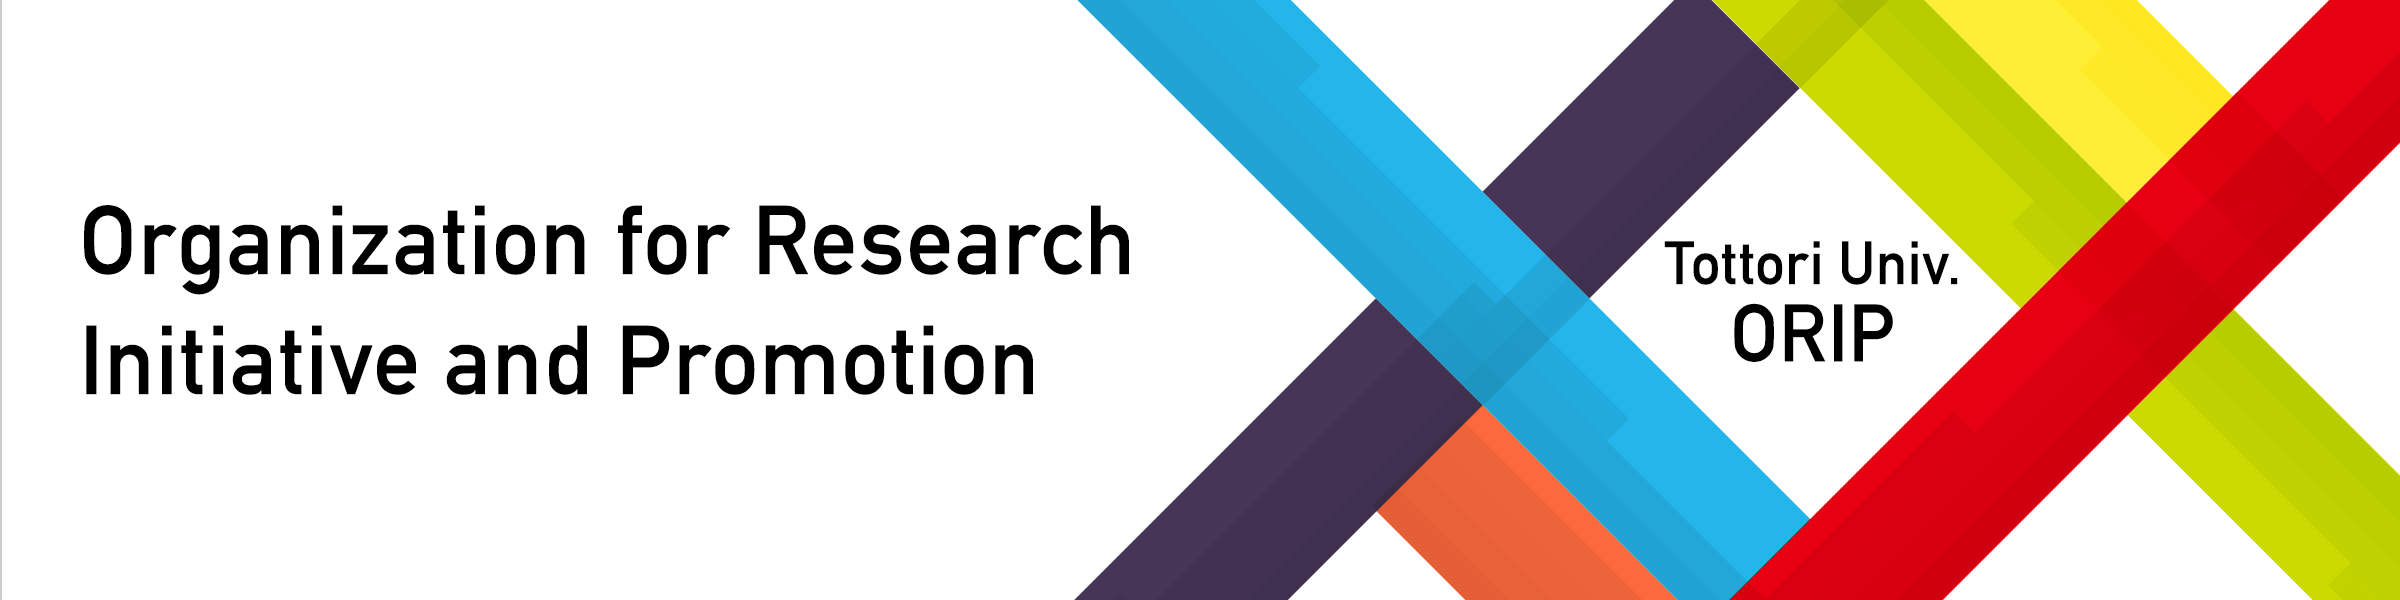 Organization for Research Initiation and Promotion 鳥取大学研究推進機構